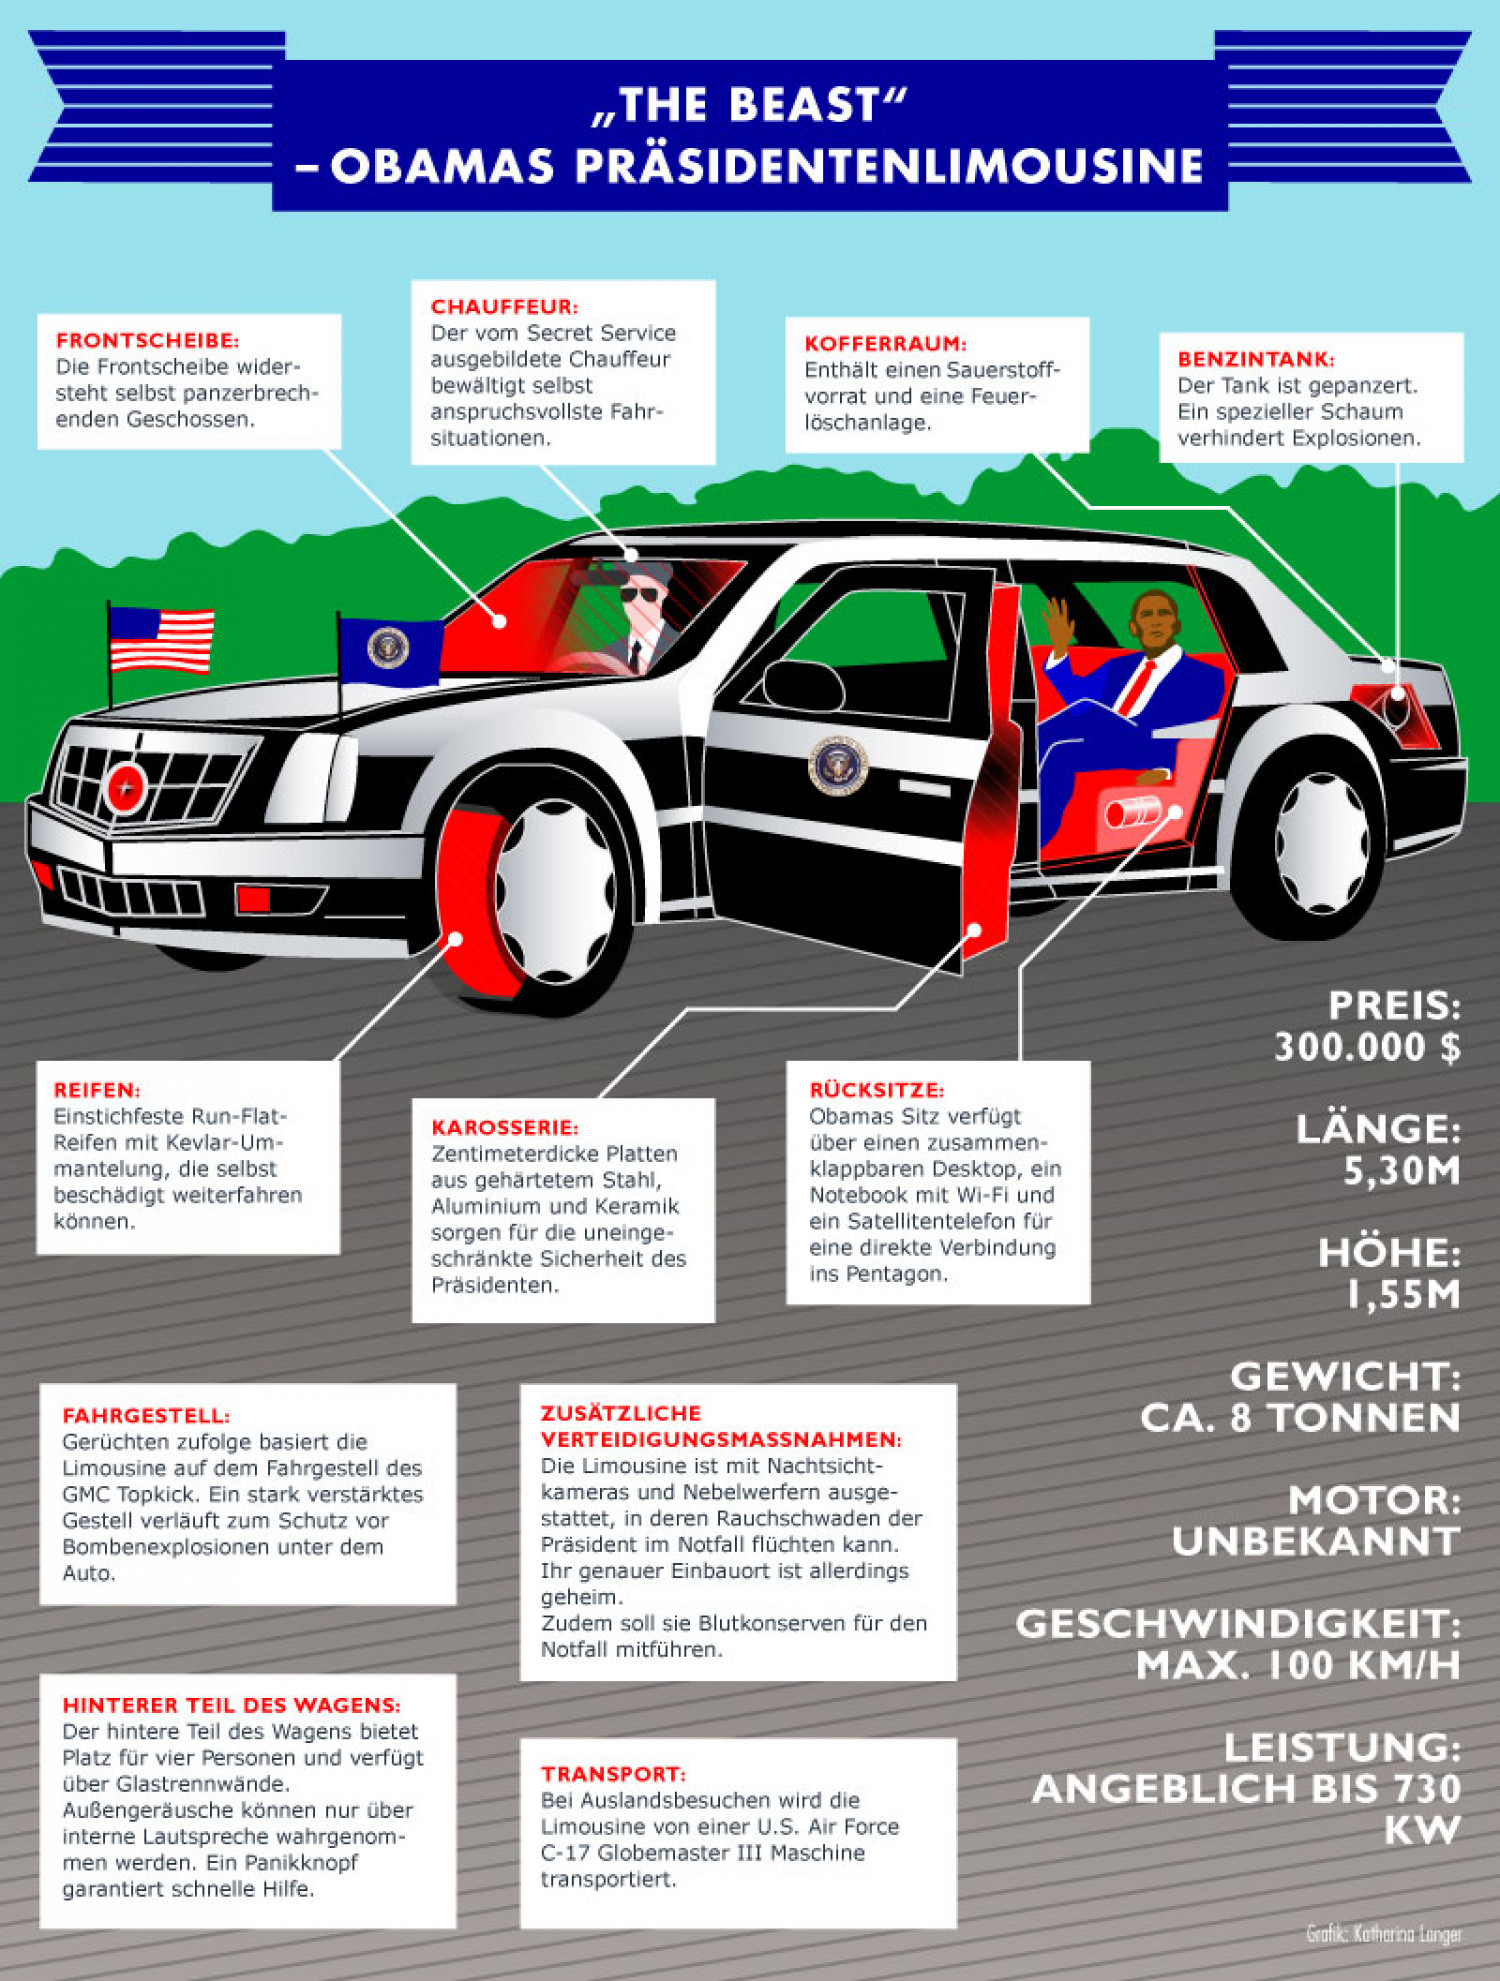 Präsidentenlimousine Obama - The Beast Infographic